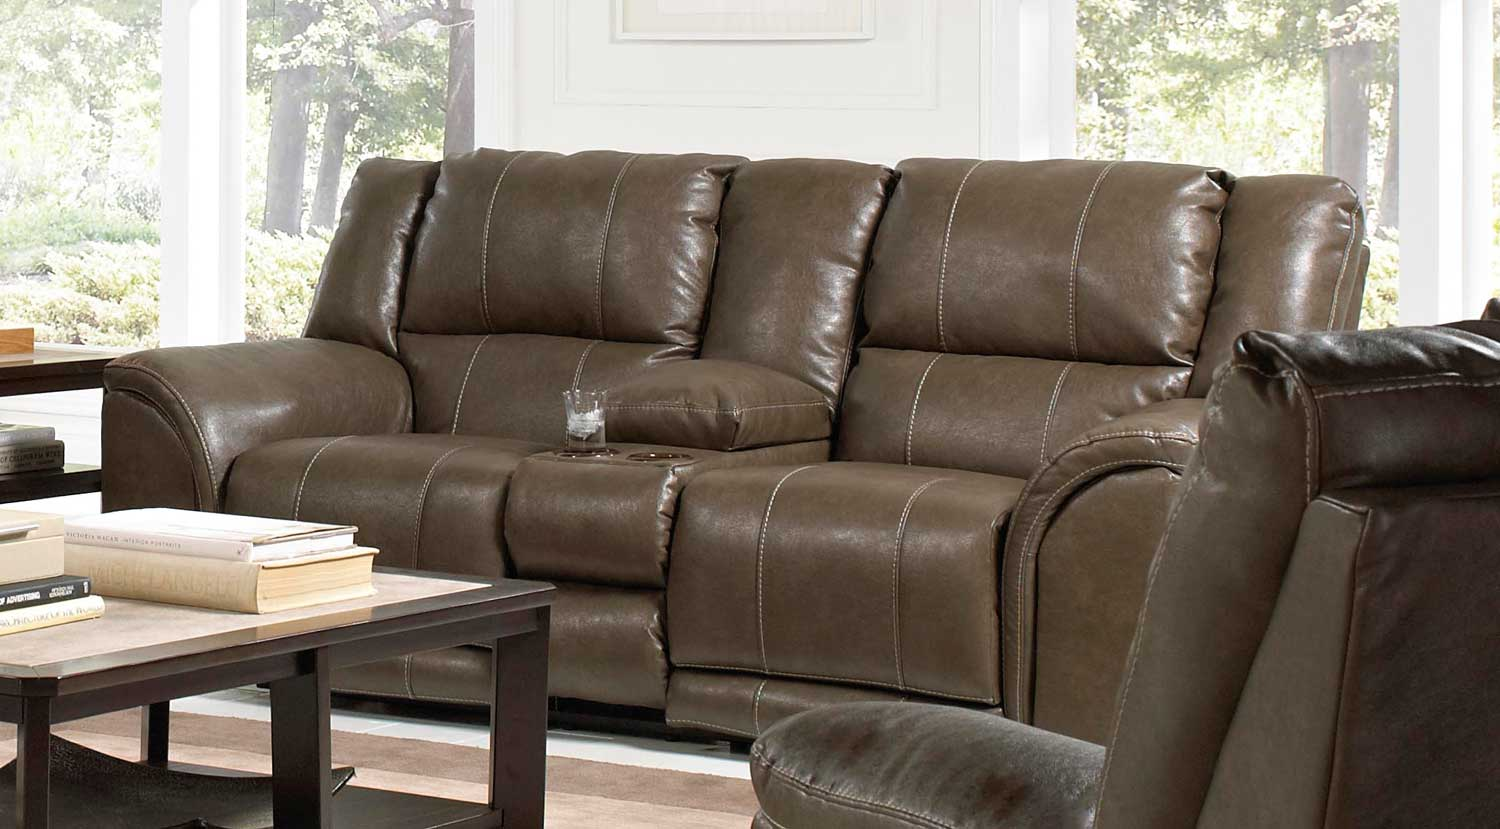 CatNapper Carmine Power Lay Flat Console Loveseat With Storage, Cupholders,  And Dual USB Ports